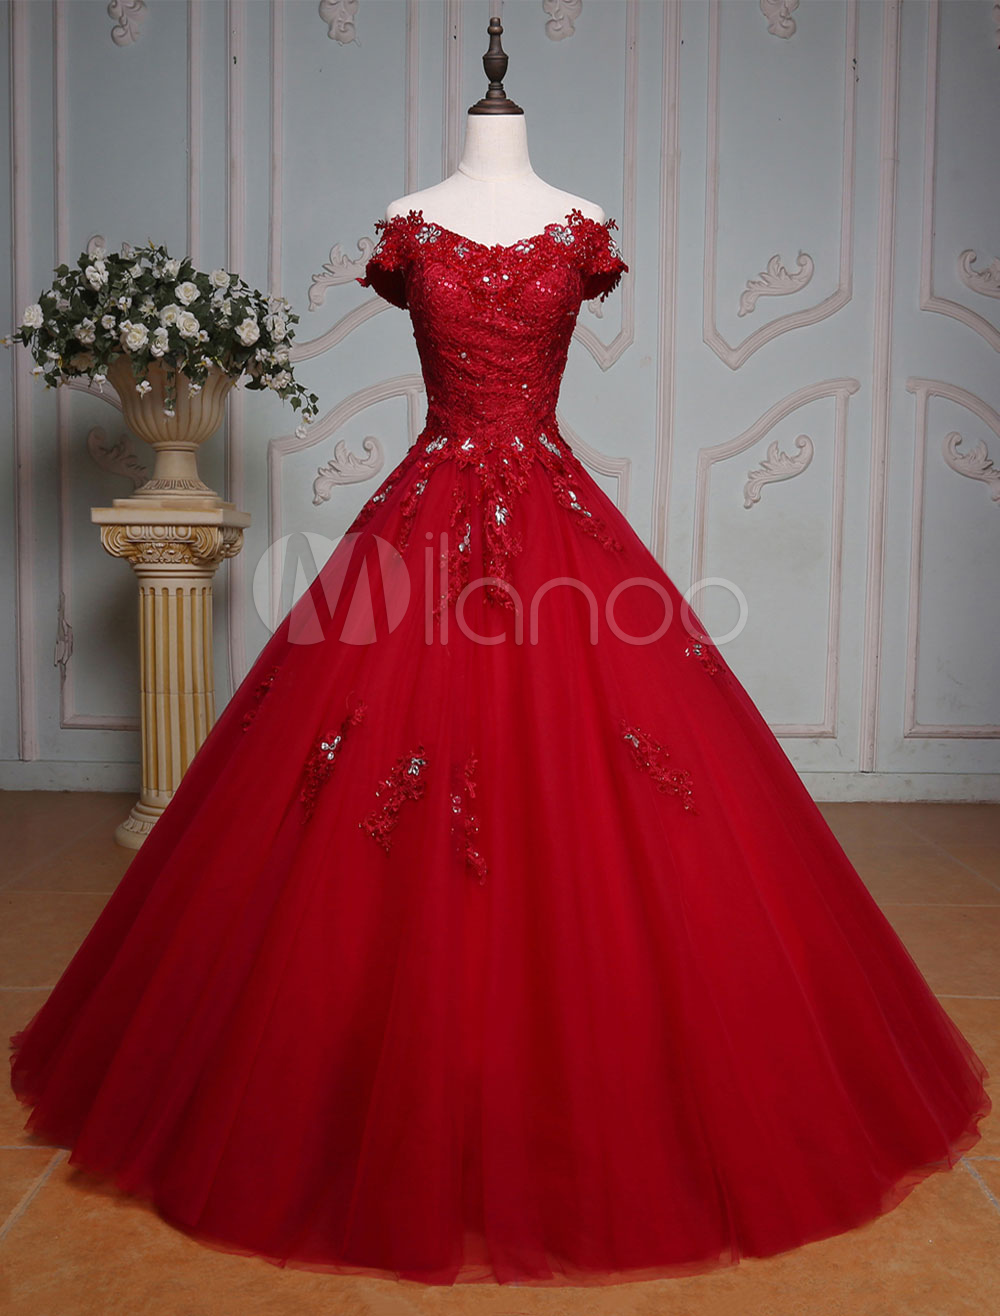 Buy Burgundy Quinceanera Dresses Luxury Off The Shoulder Princess Lace Beading Floor Length Tulle Women's Pageant Dress for $237.59 in Milanoo store